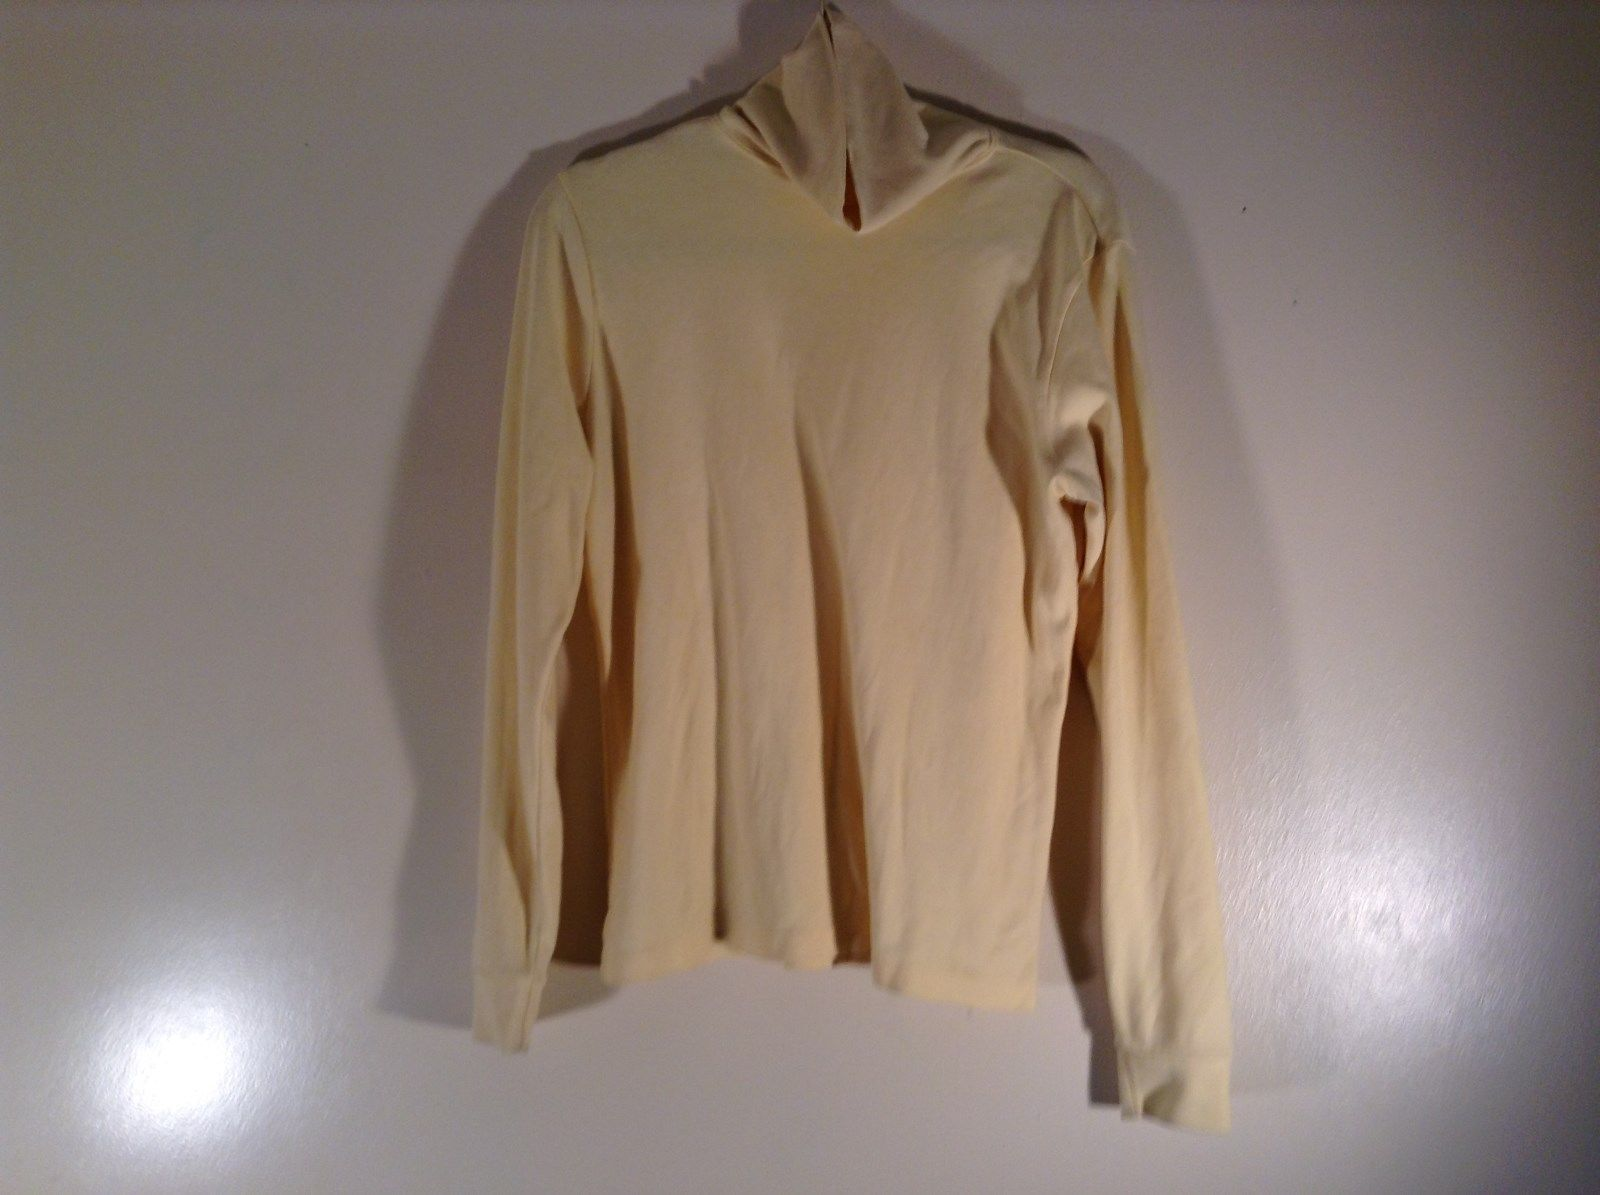 Yellow L L Bean Long Sleeve Turtleneck Top Fit Regular Size 5